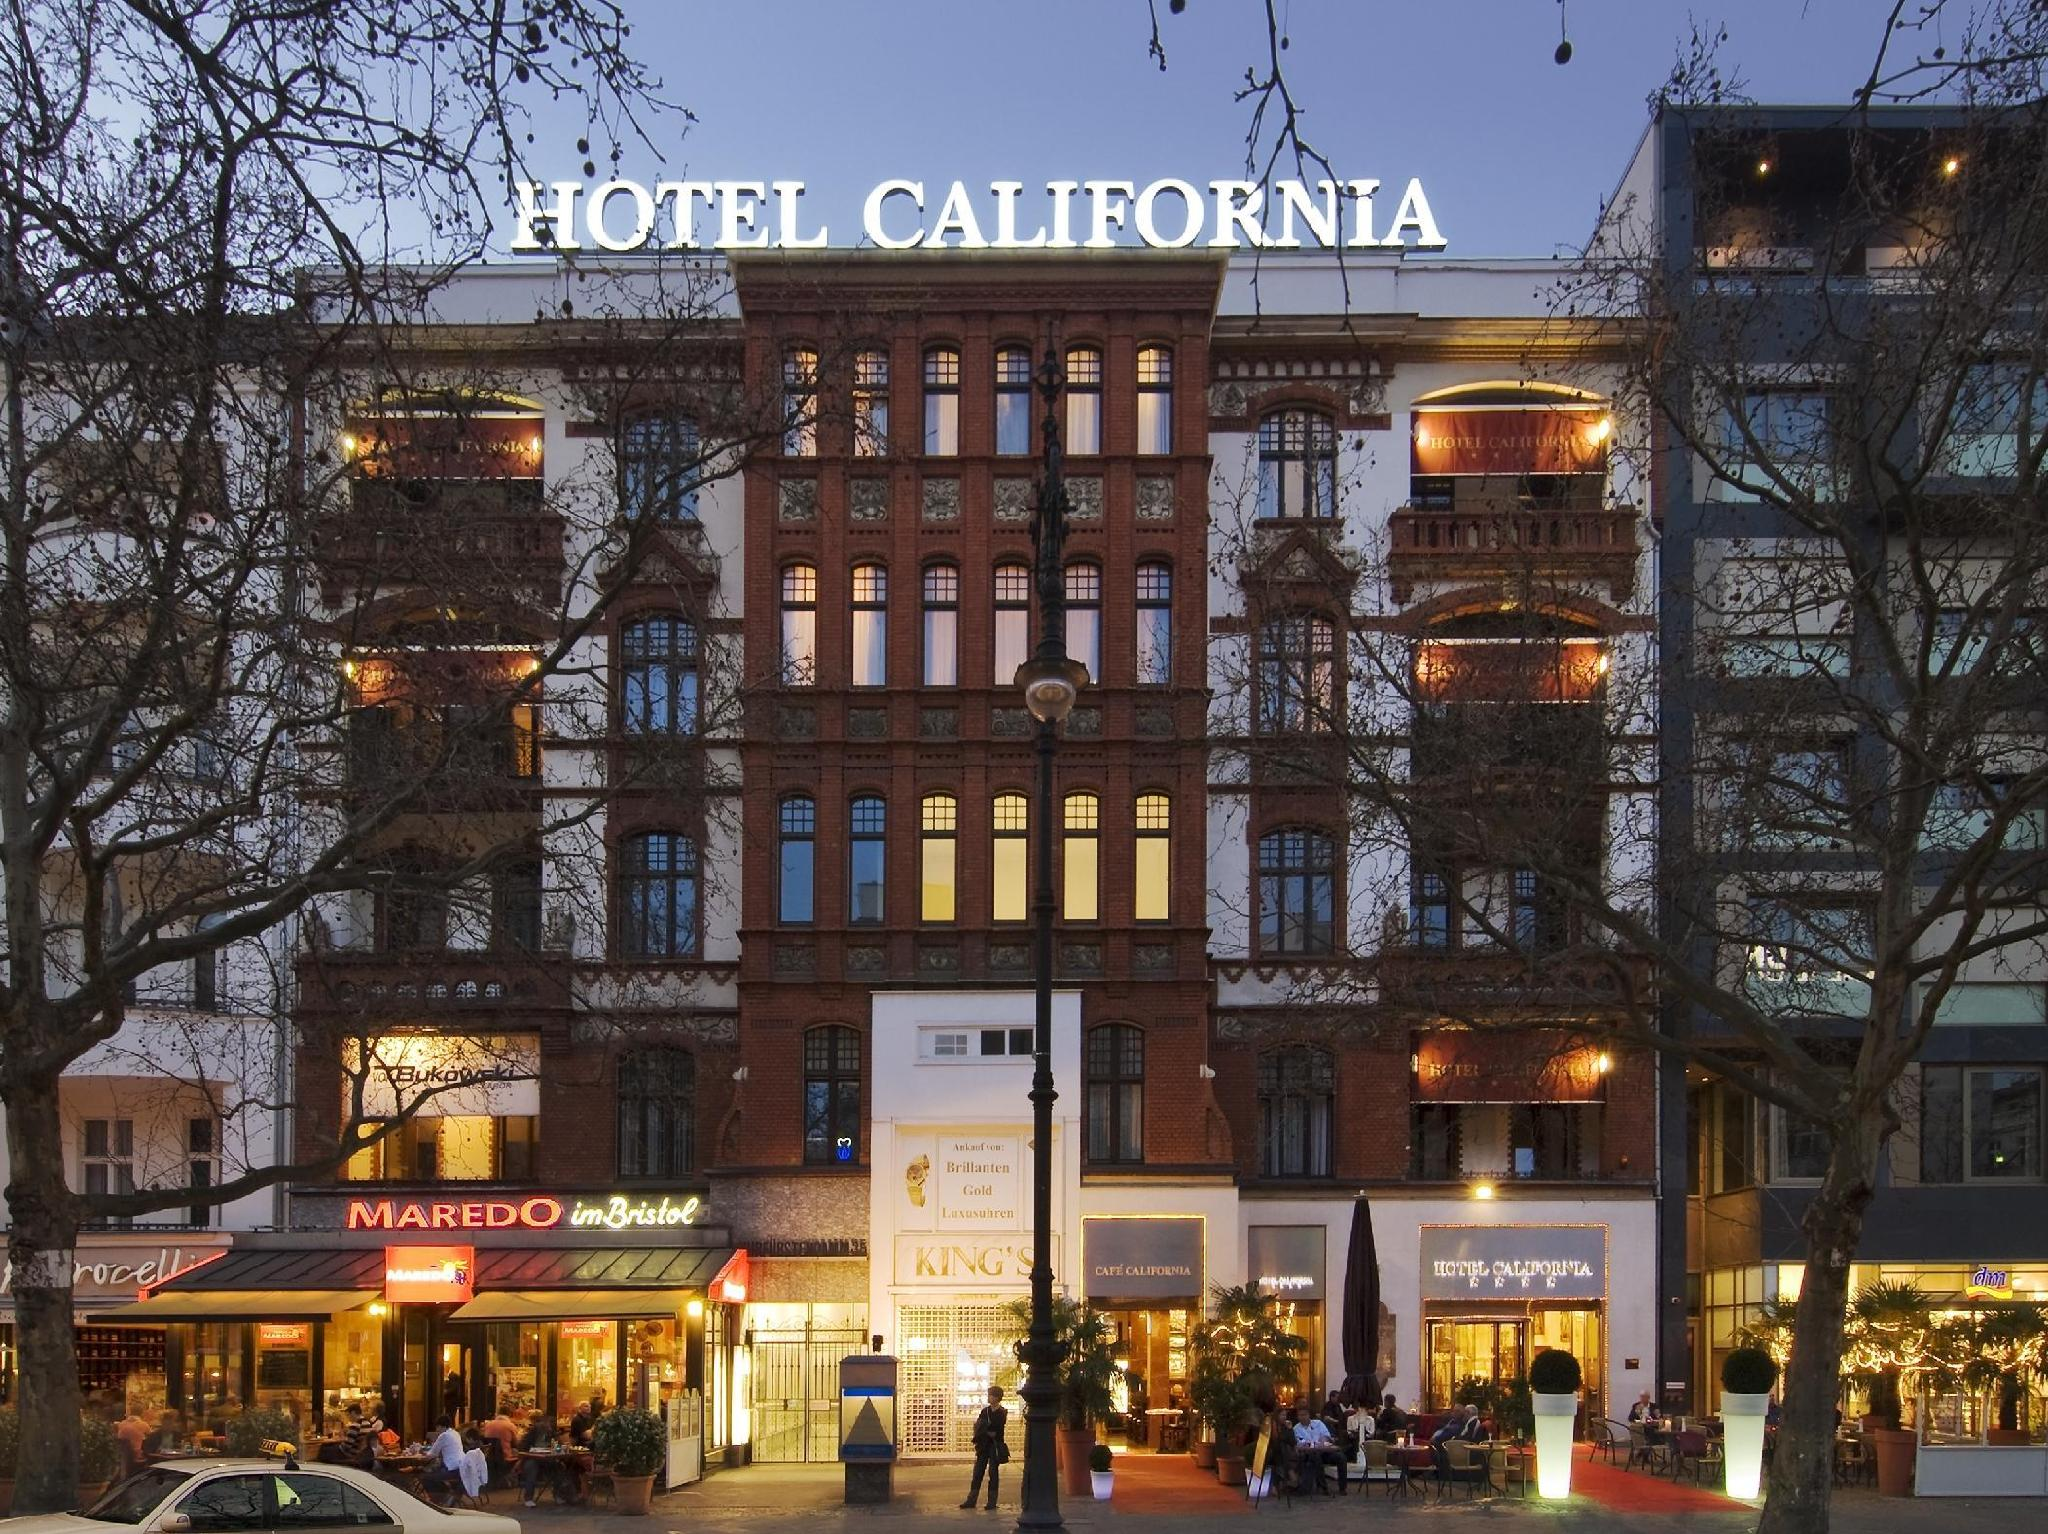 Hotel California am Kurfuerstendamm Берлин